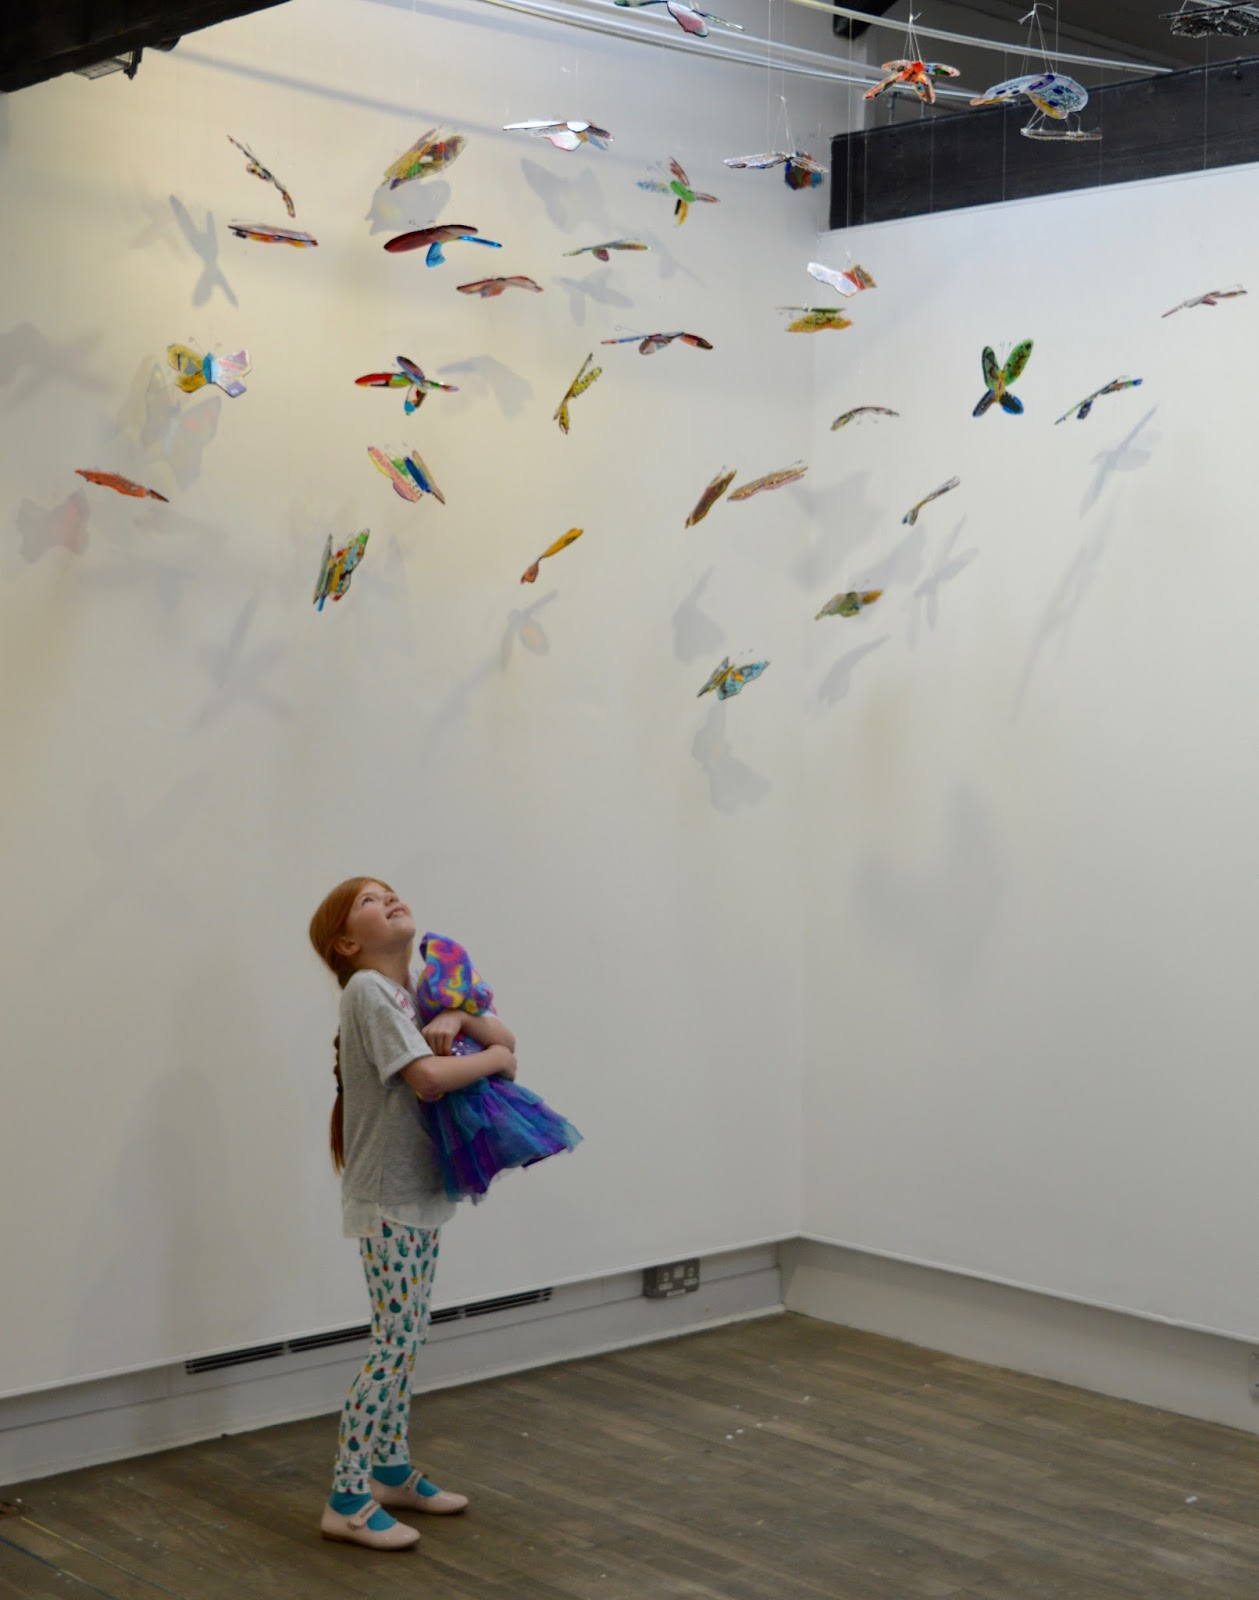 Arts Centre Washington | Events for Families (feat. Chalk's 1960's Family Rave) - butterflies